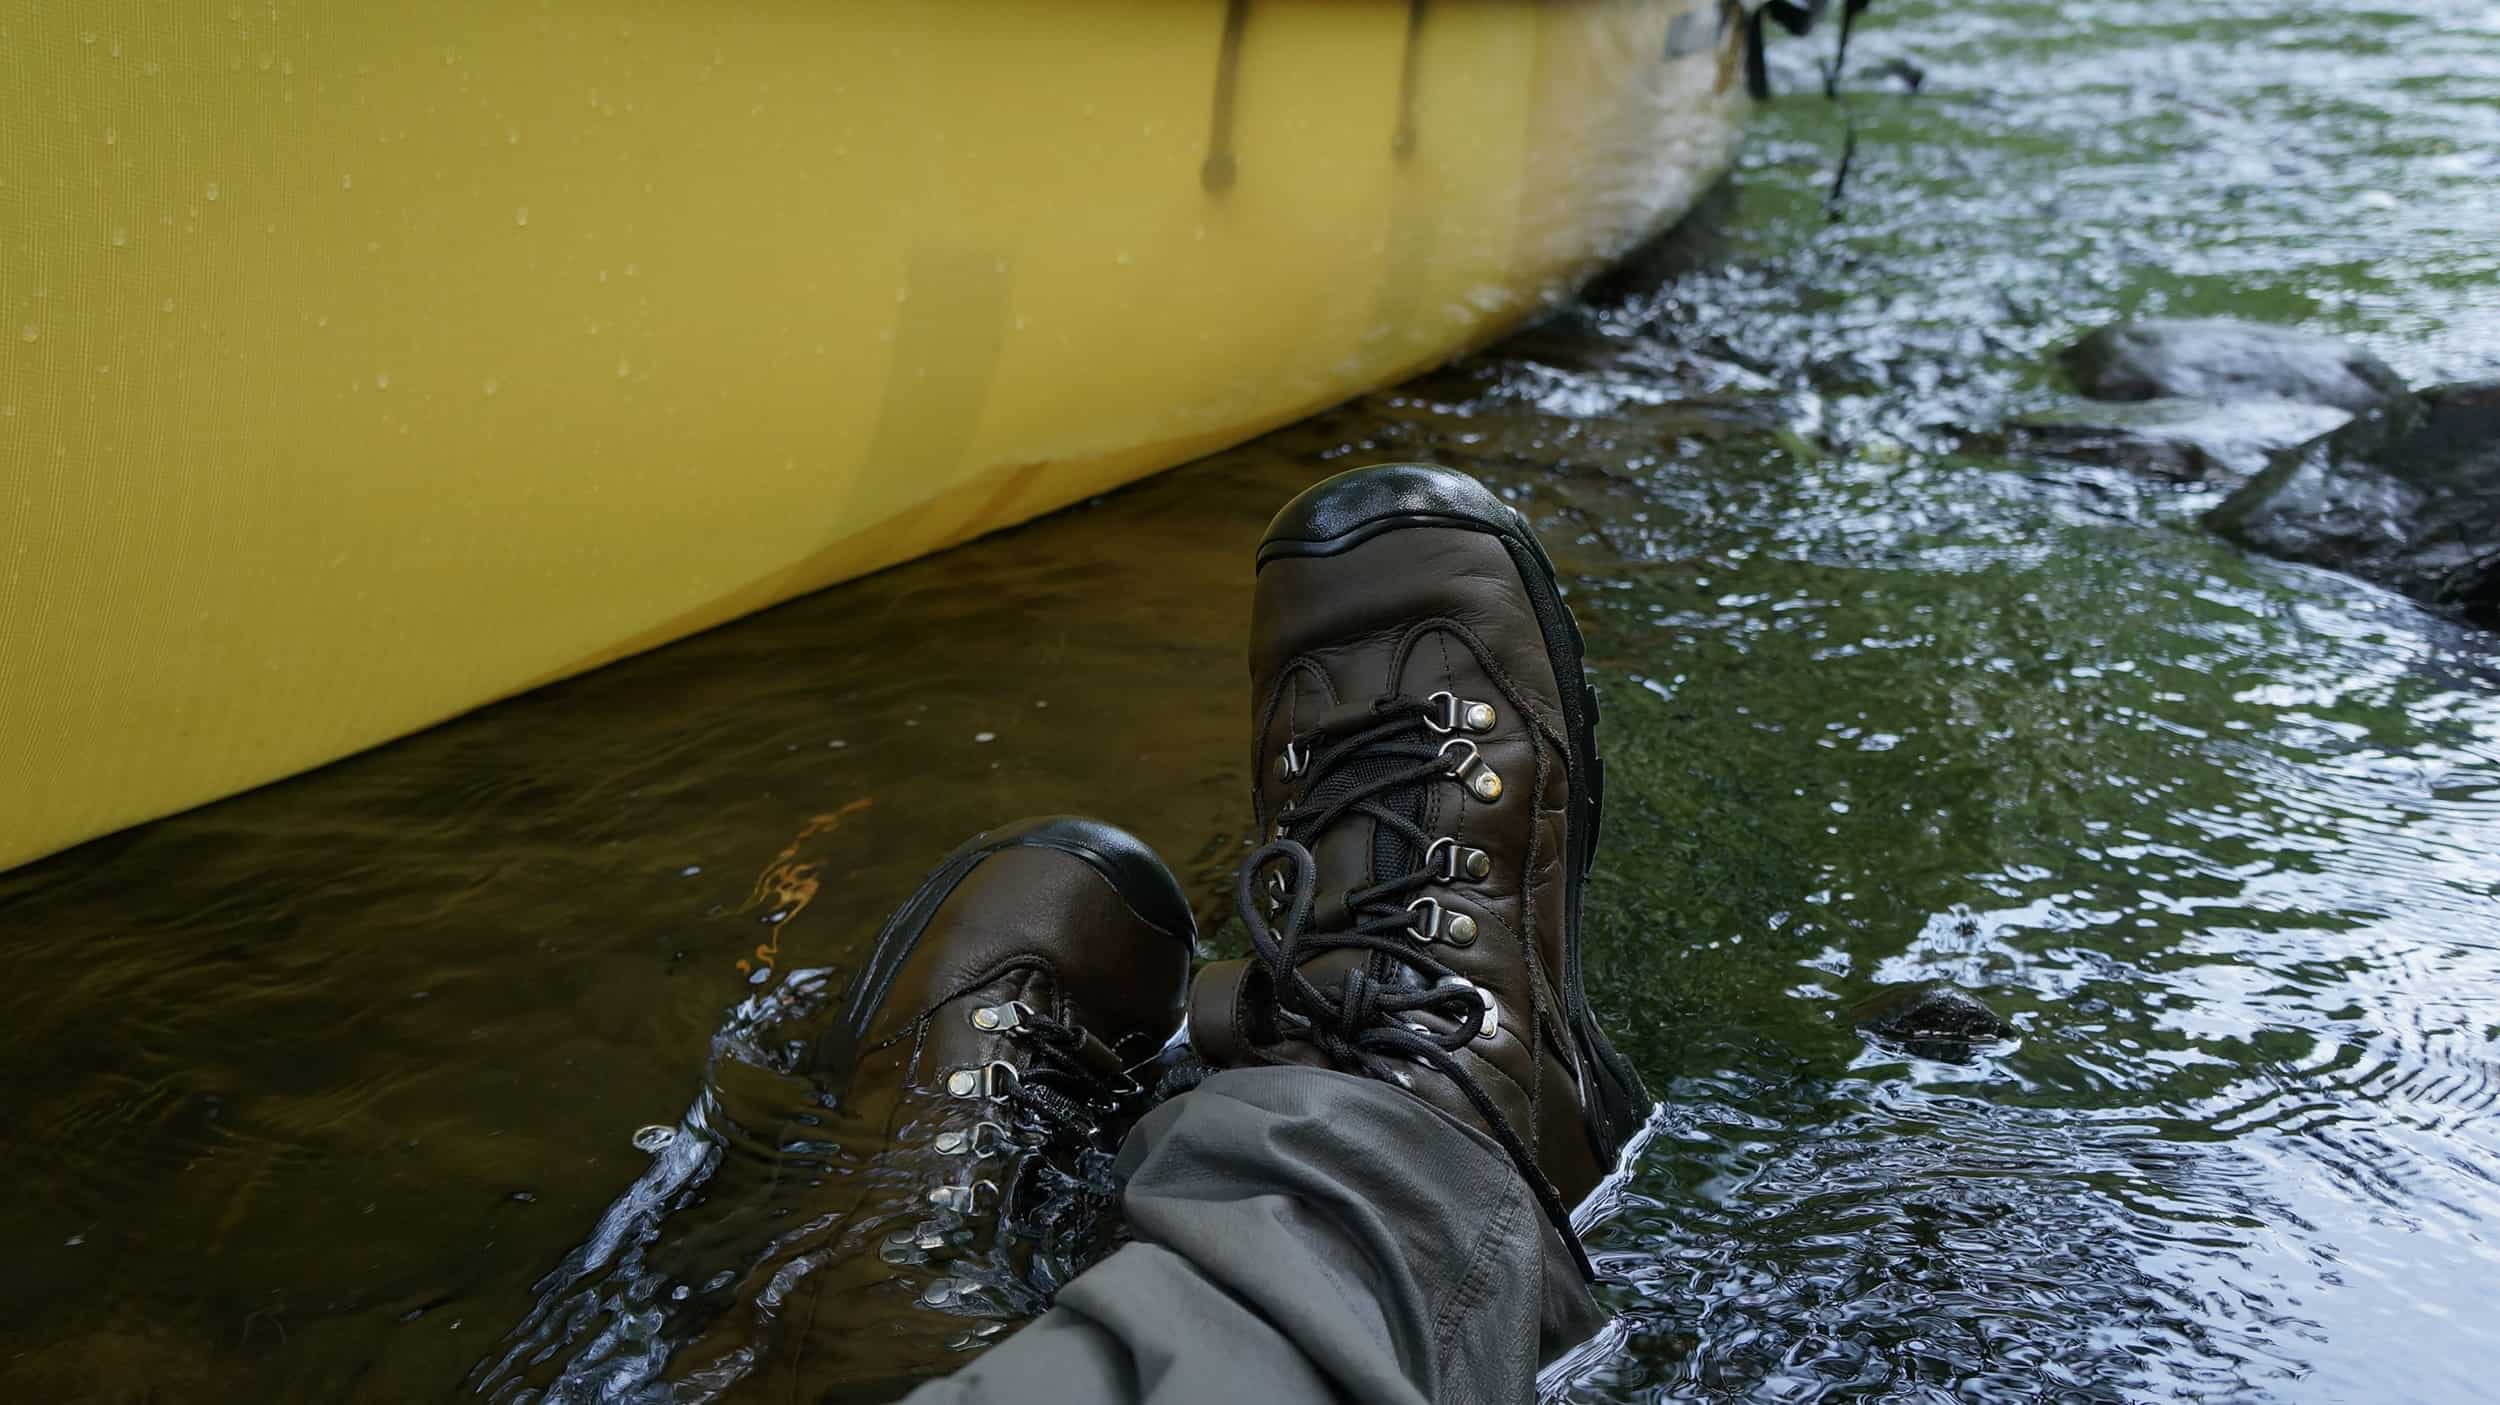 The Happy Camper: Hiking Boots while Paddling